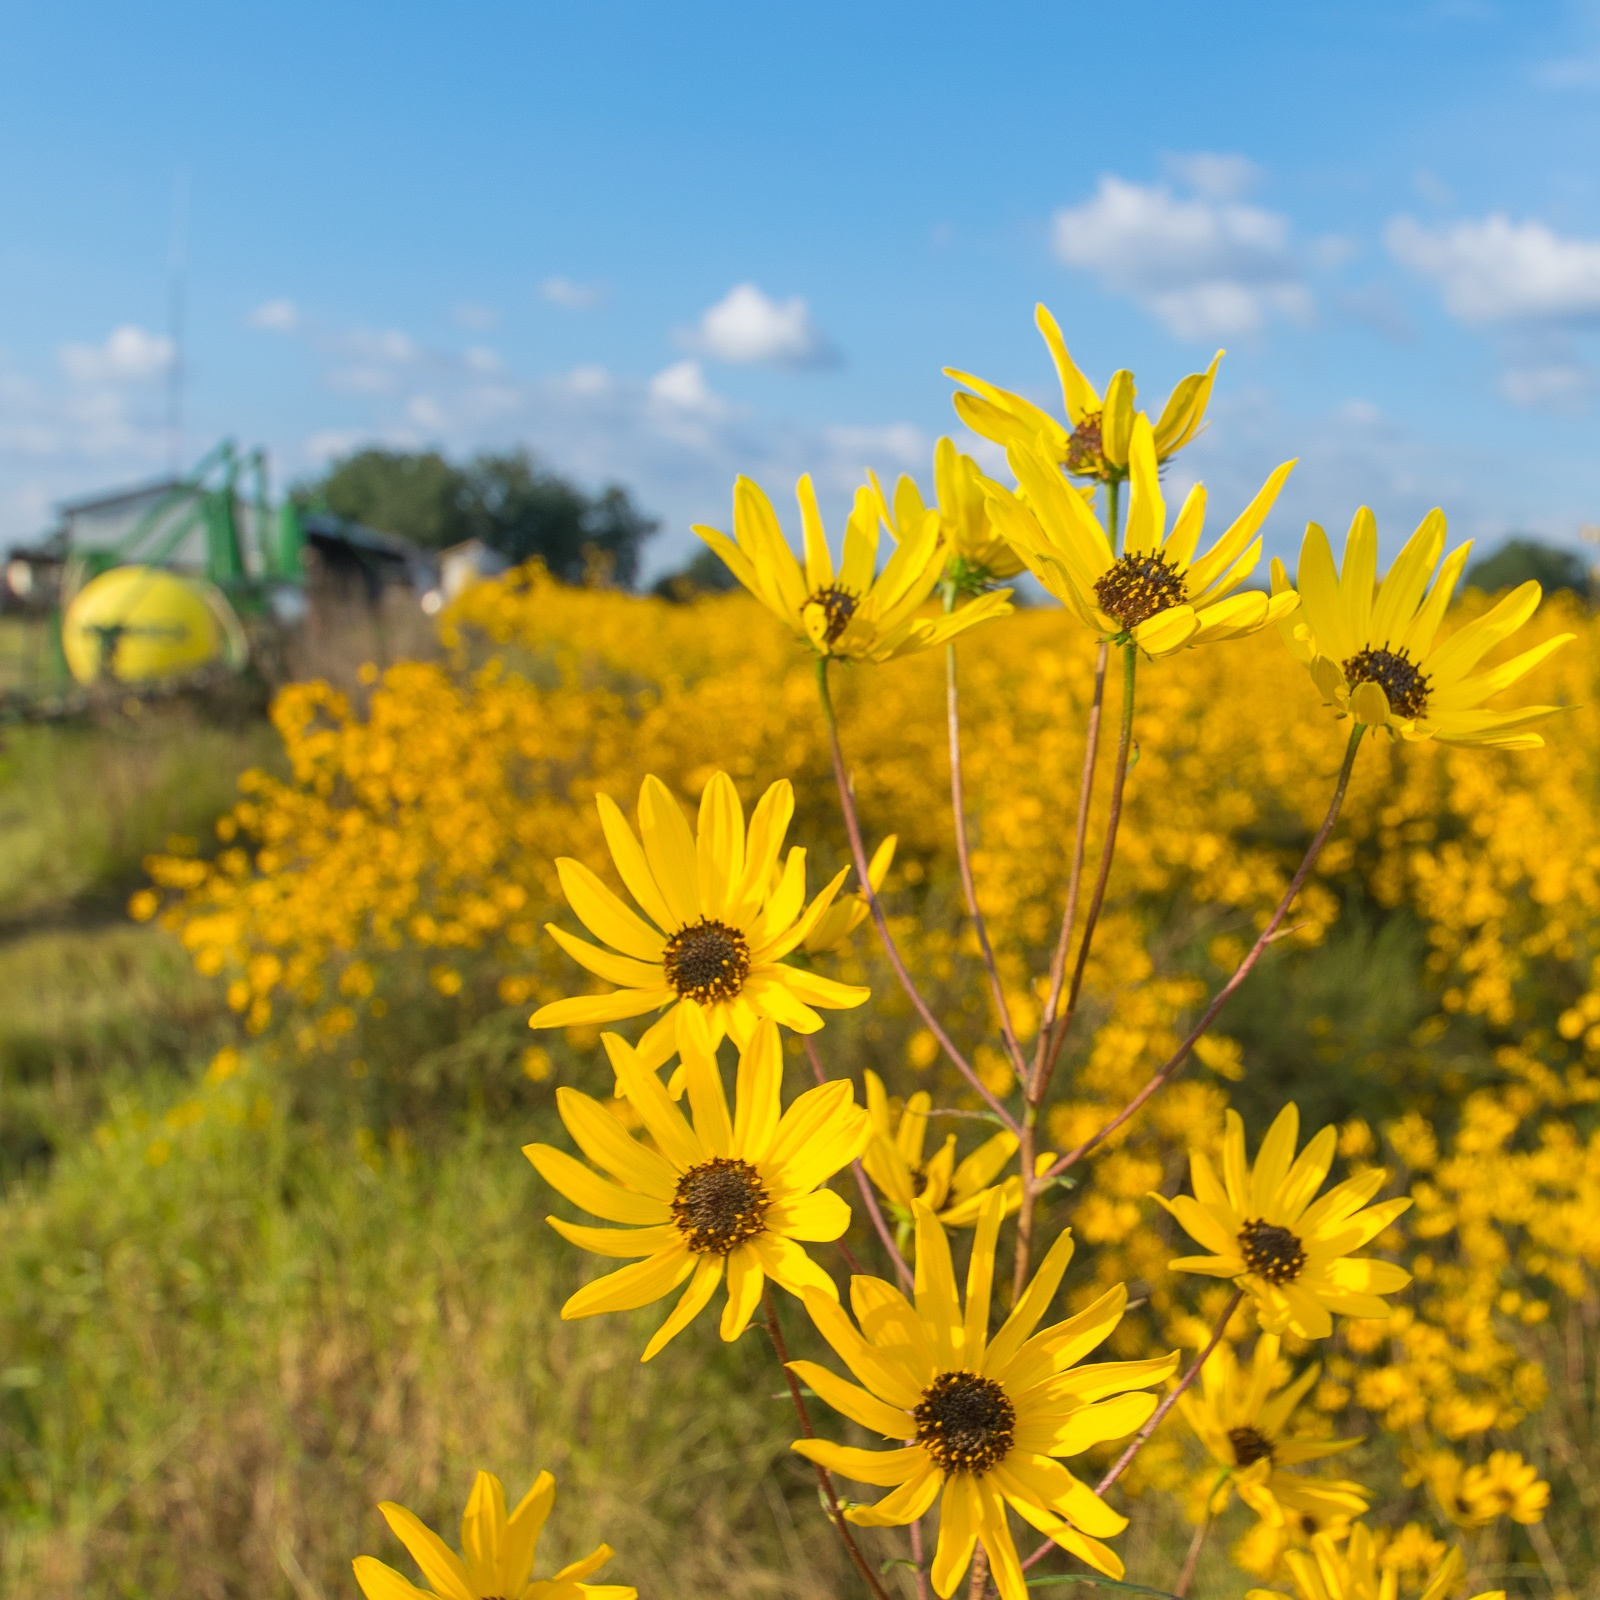 Narrow-Leaved Sunflower farm